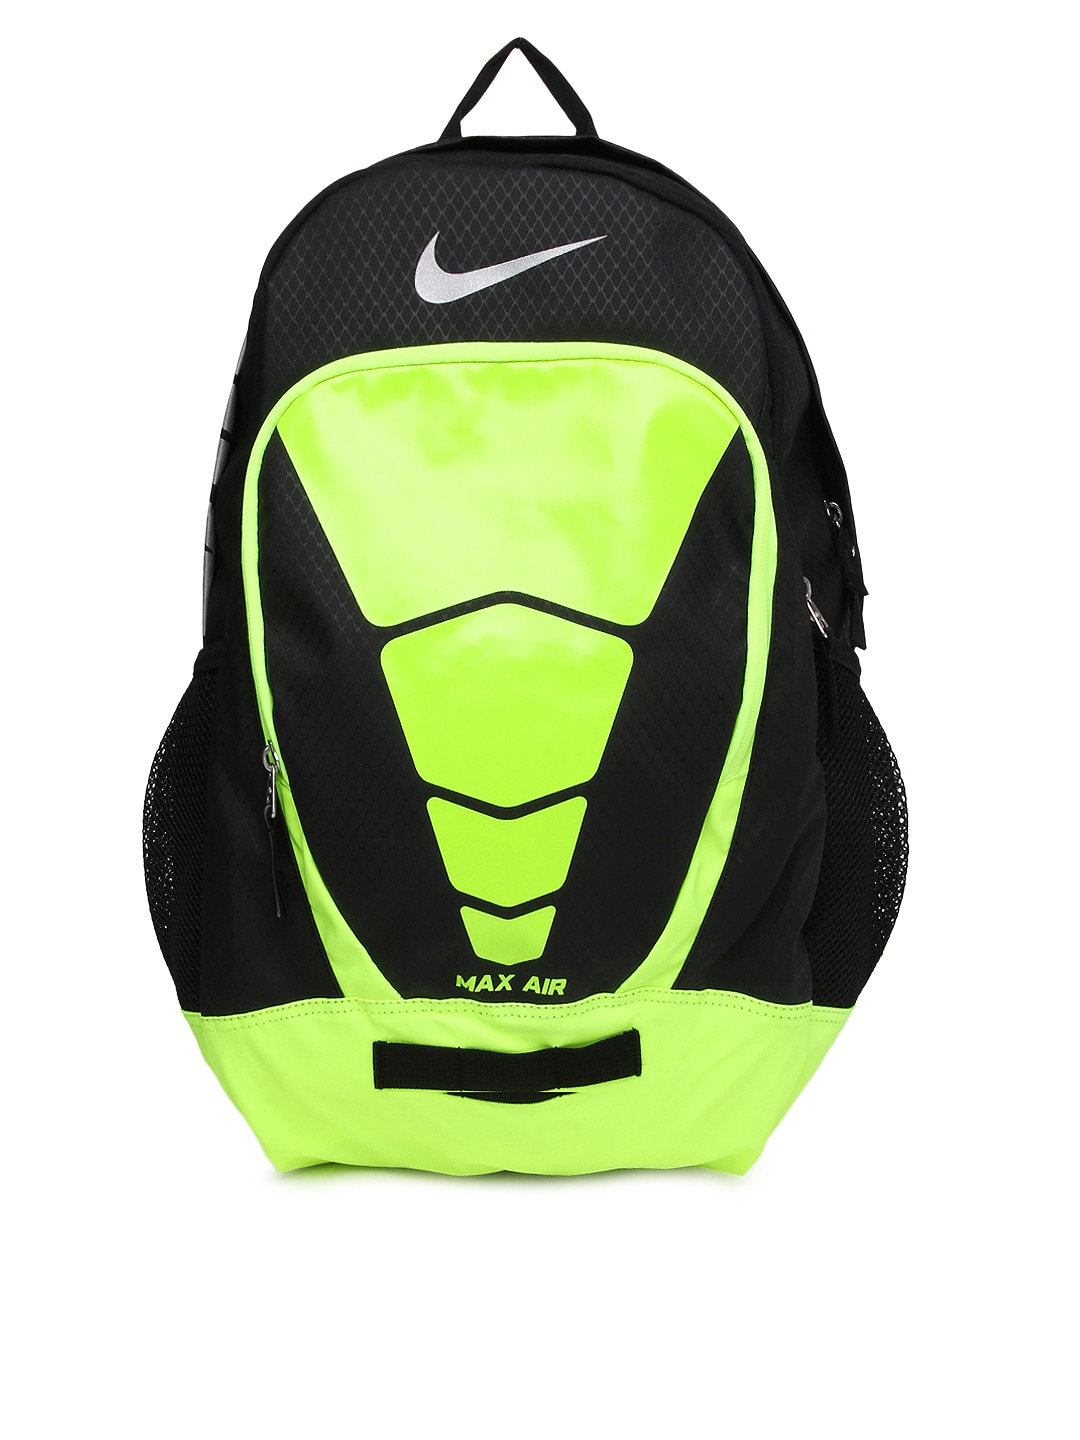 0cac6fdb8b5 Nike ba4883-058 Unisex Black Backpack - Best Price in India   priceiq.in